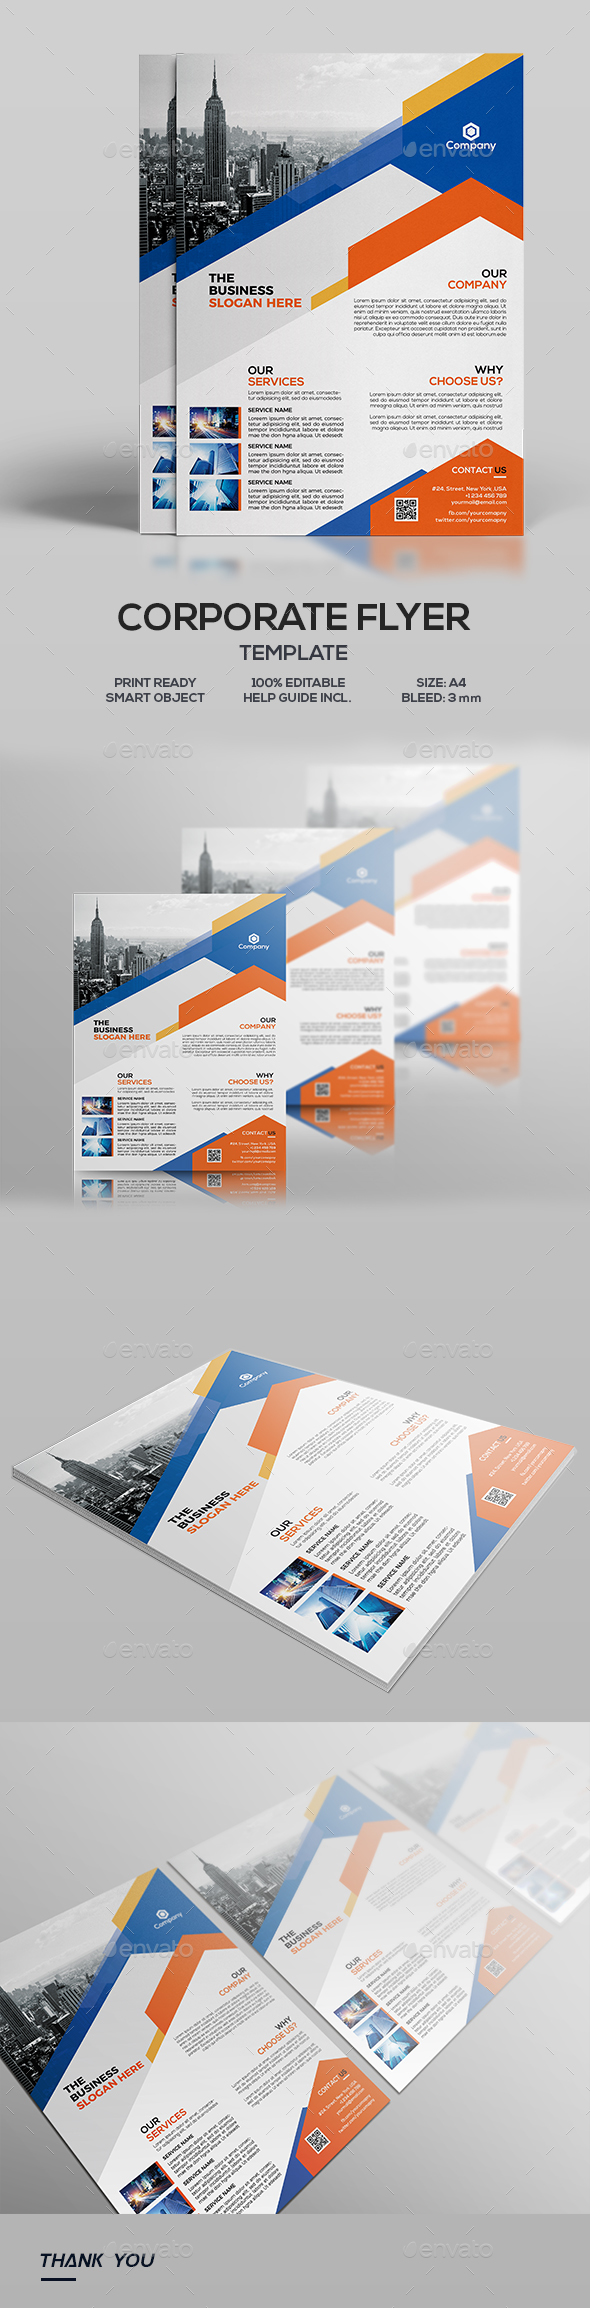 Corporate Flyer - Corporate Flyers